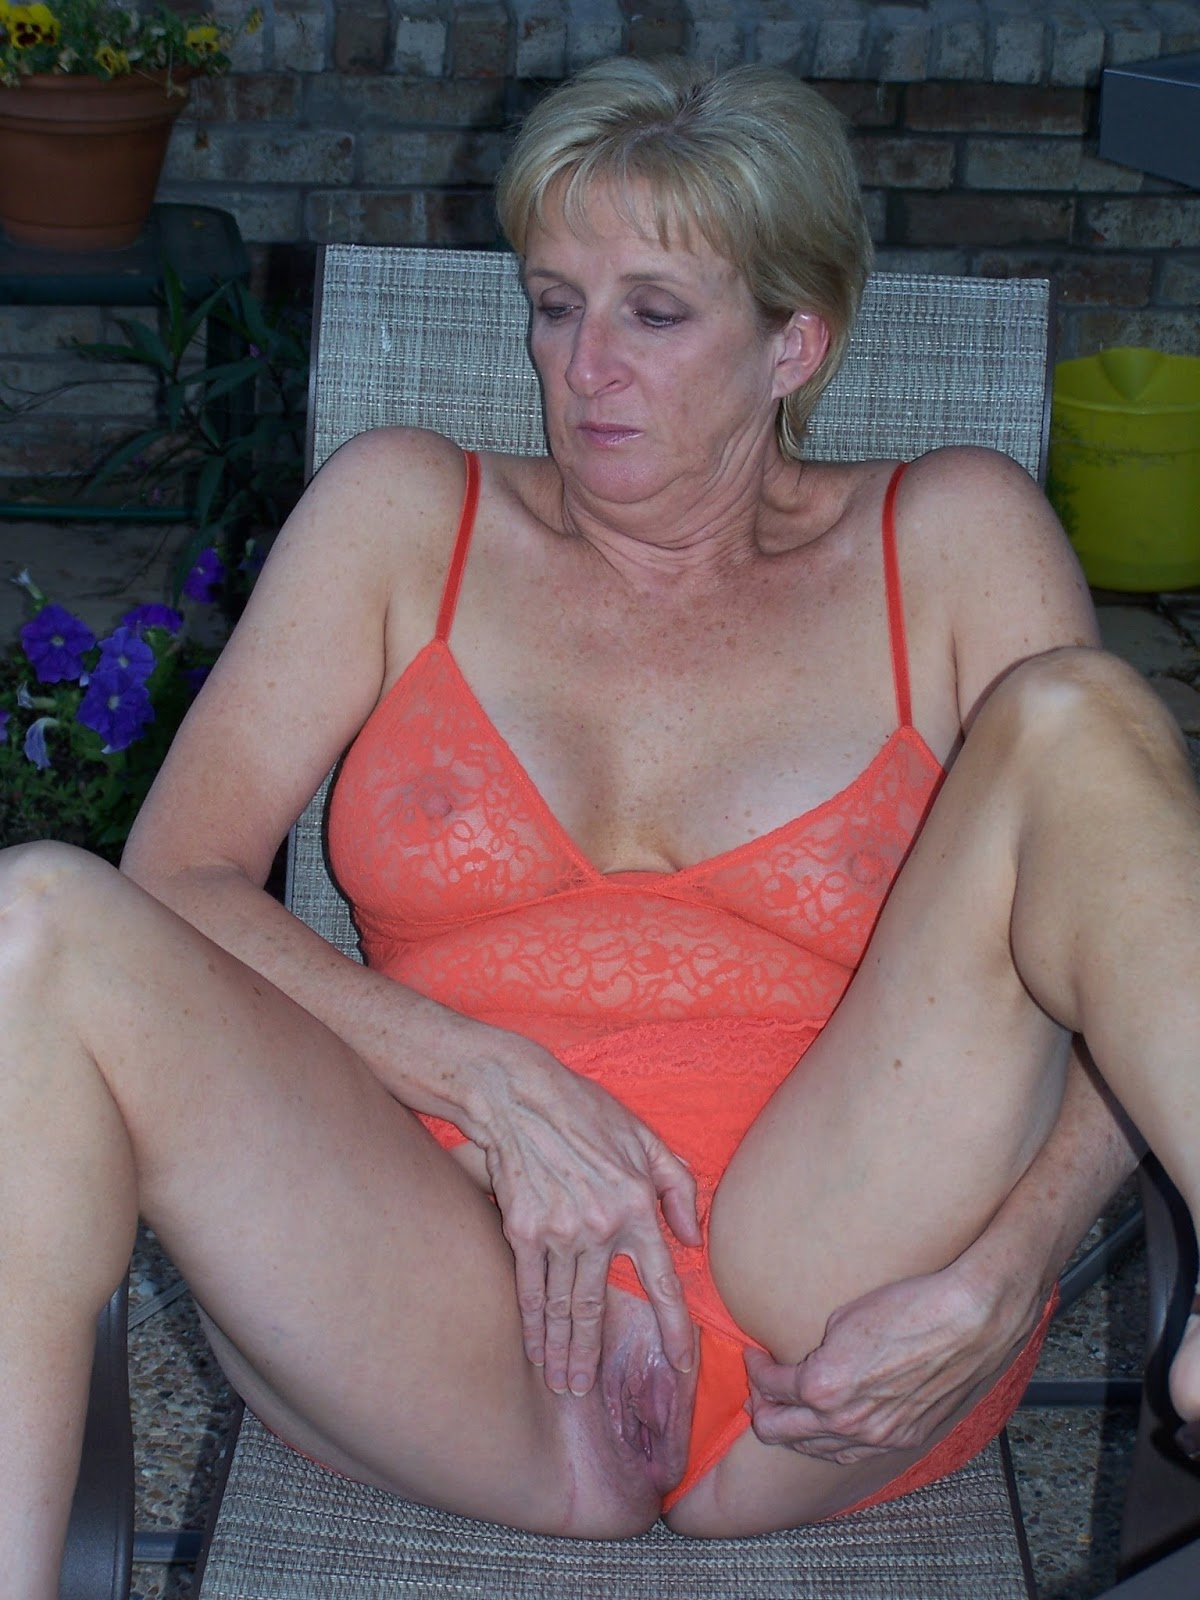 This amateur wife granny videos her